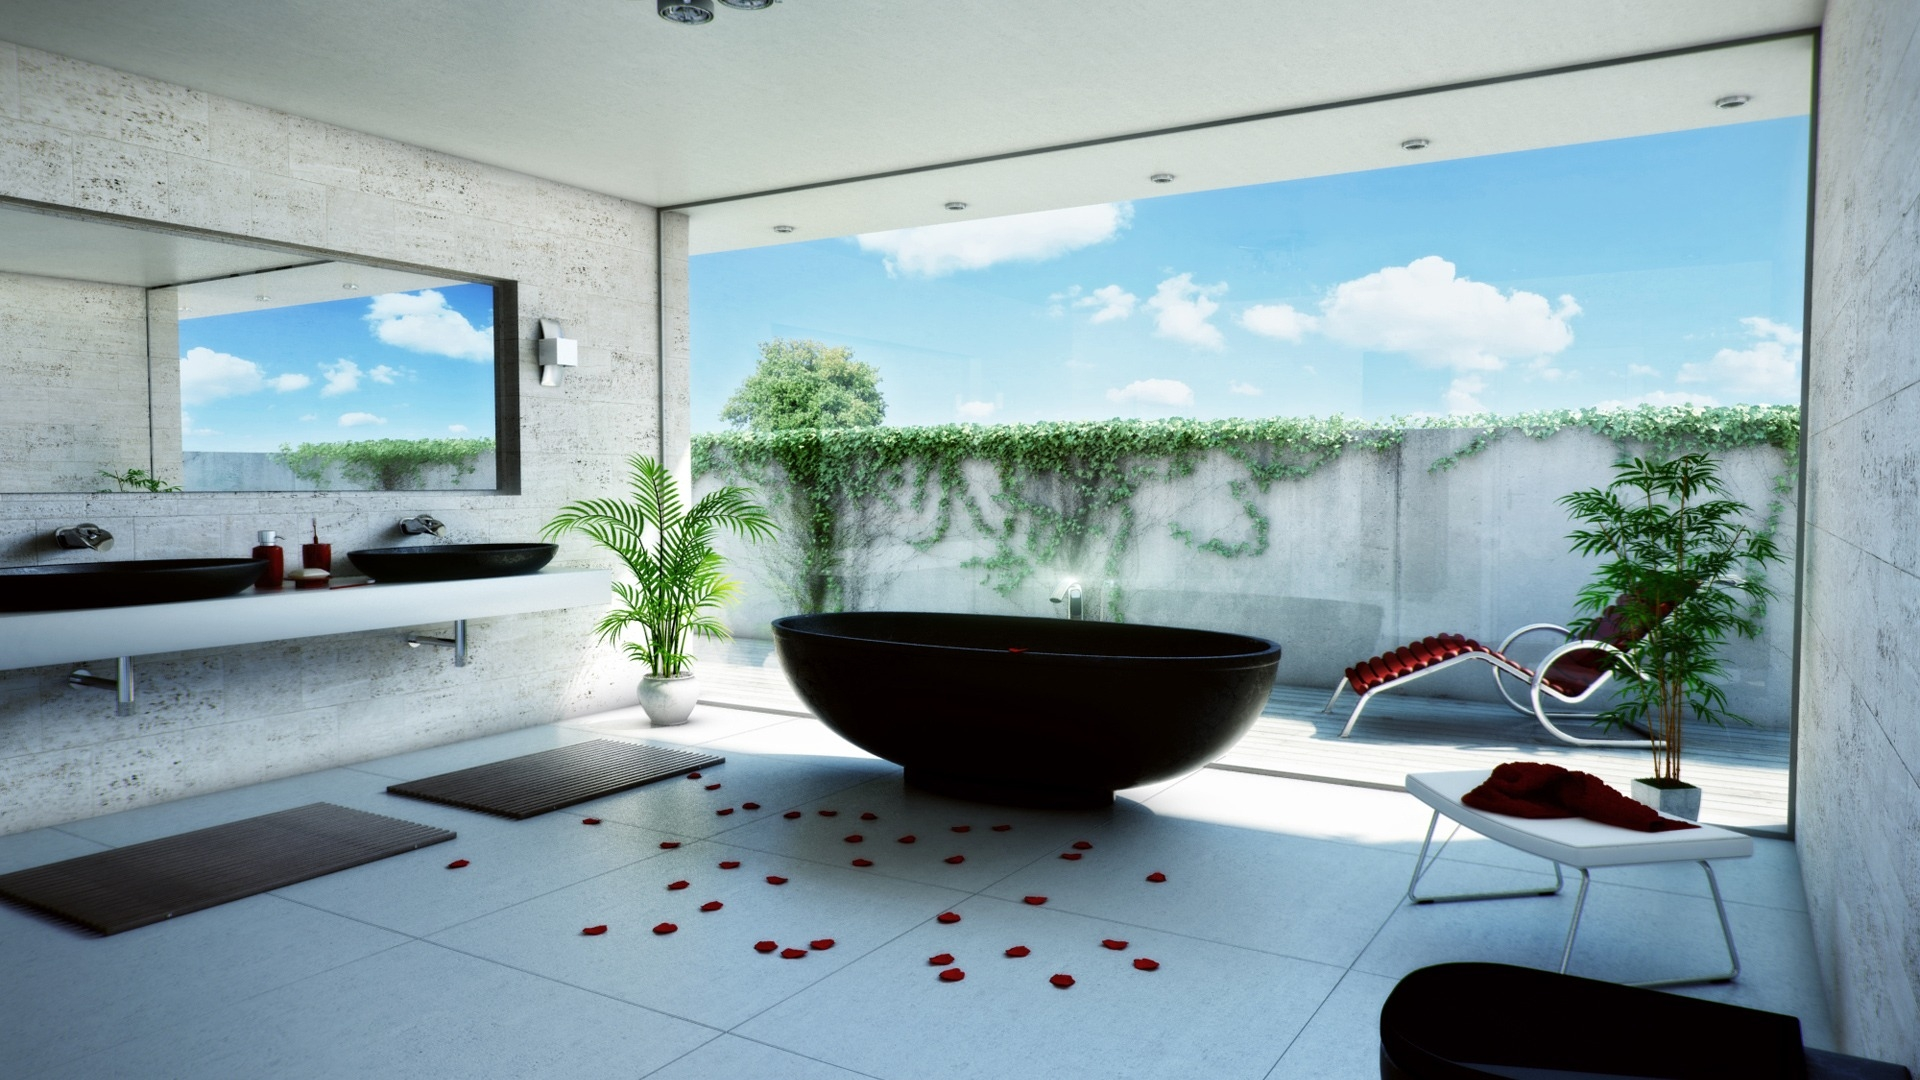 New Bathroom Wallpaper ideas. Bathroom Wallpaper Ideas Collection Free Download